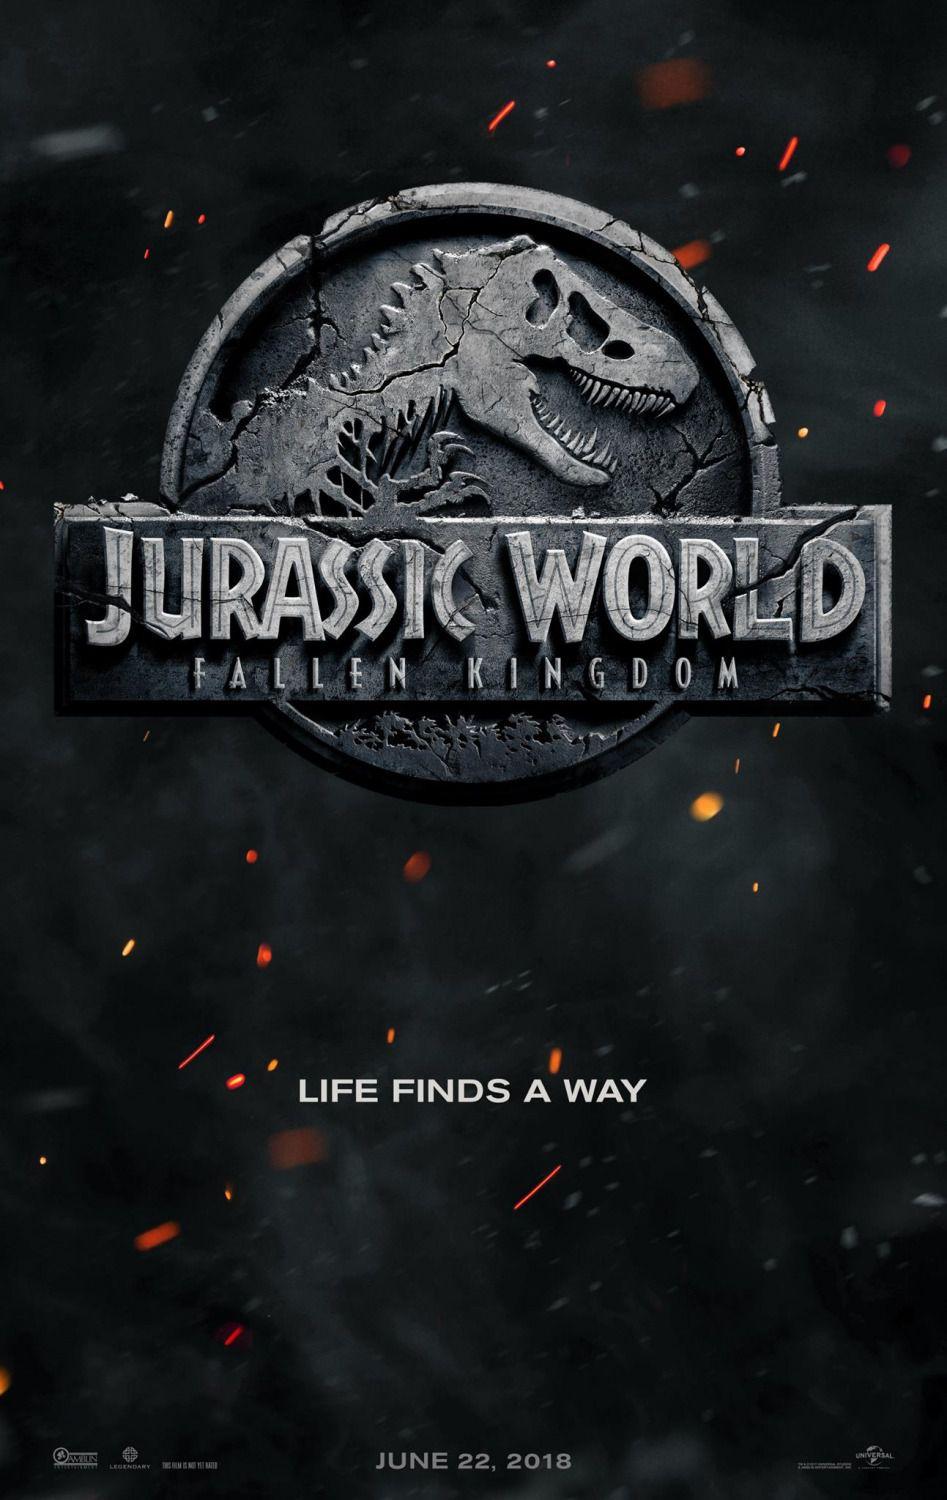 Jurassic World Fallen Kingdom - film poster